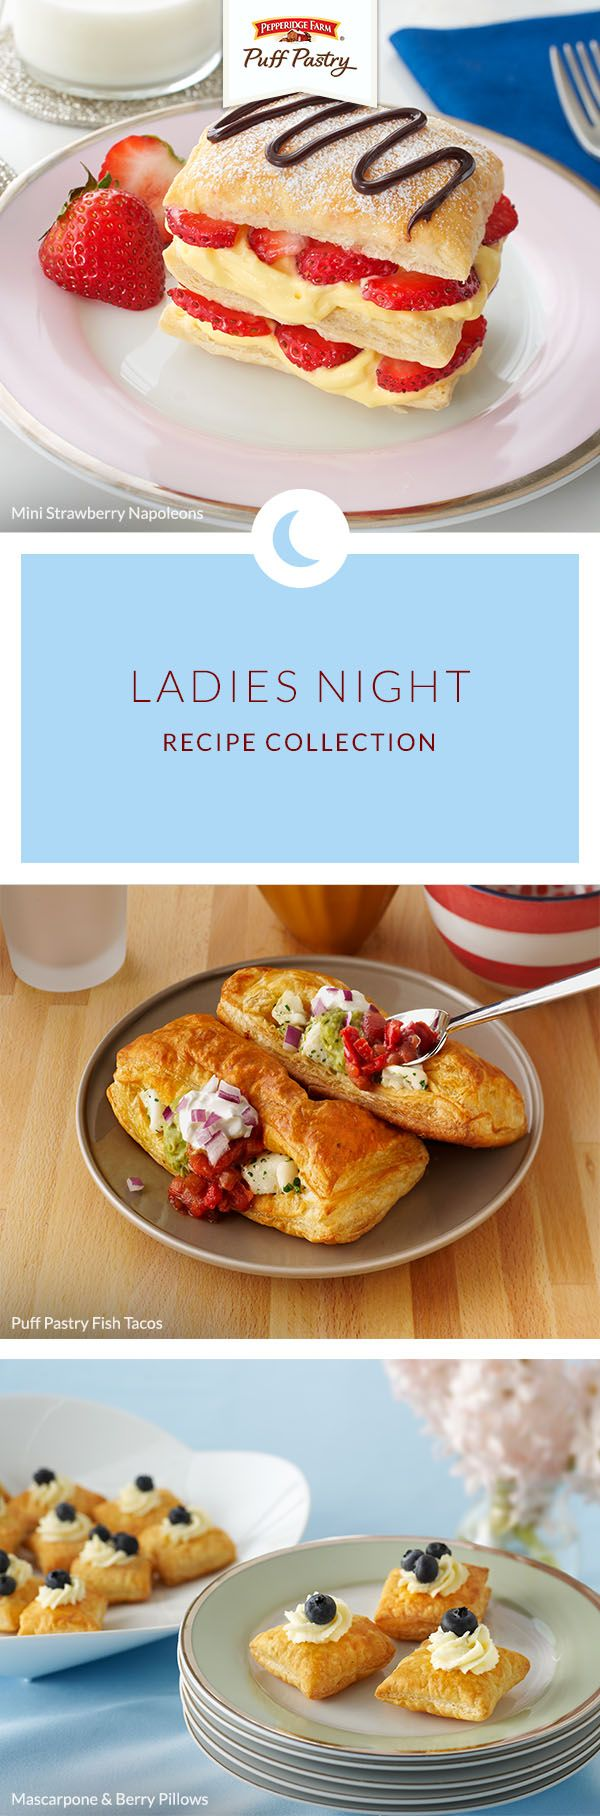 Pepperidge Farm Puff Pastry Ladies Night Recipe Collection. Gather all your girlfriends and host ladies' night at your house! Treat your friends to these savory appetizers and heavenly desserts that are perfect with a glass of wine or champagne. From flavorful Puff Pastry tacos to sweet Mascarpone & Berry Pillows, your gal pals will enjoy an evening they won't forget.